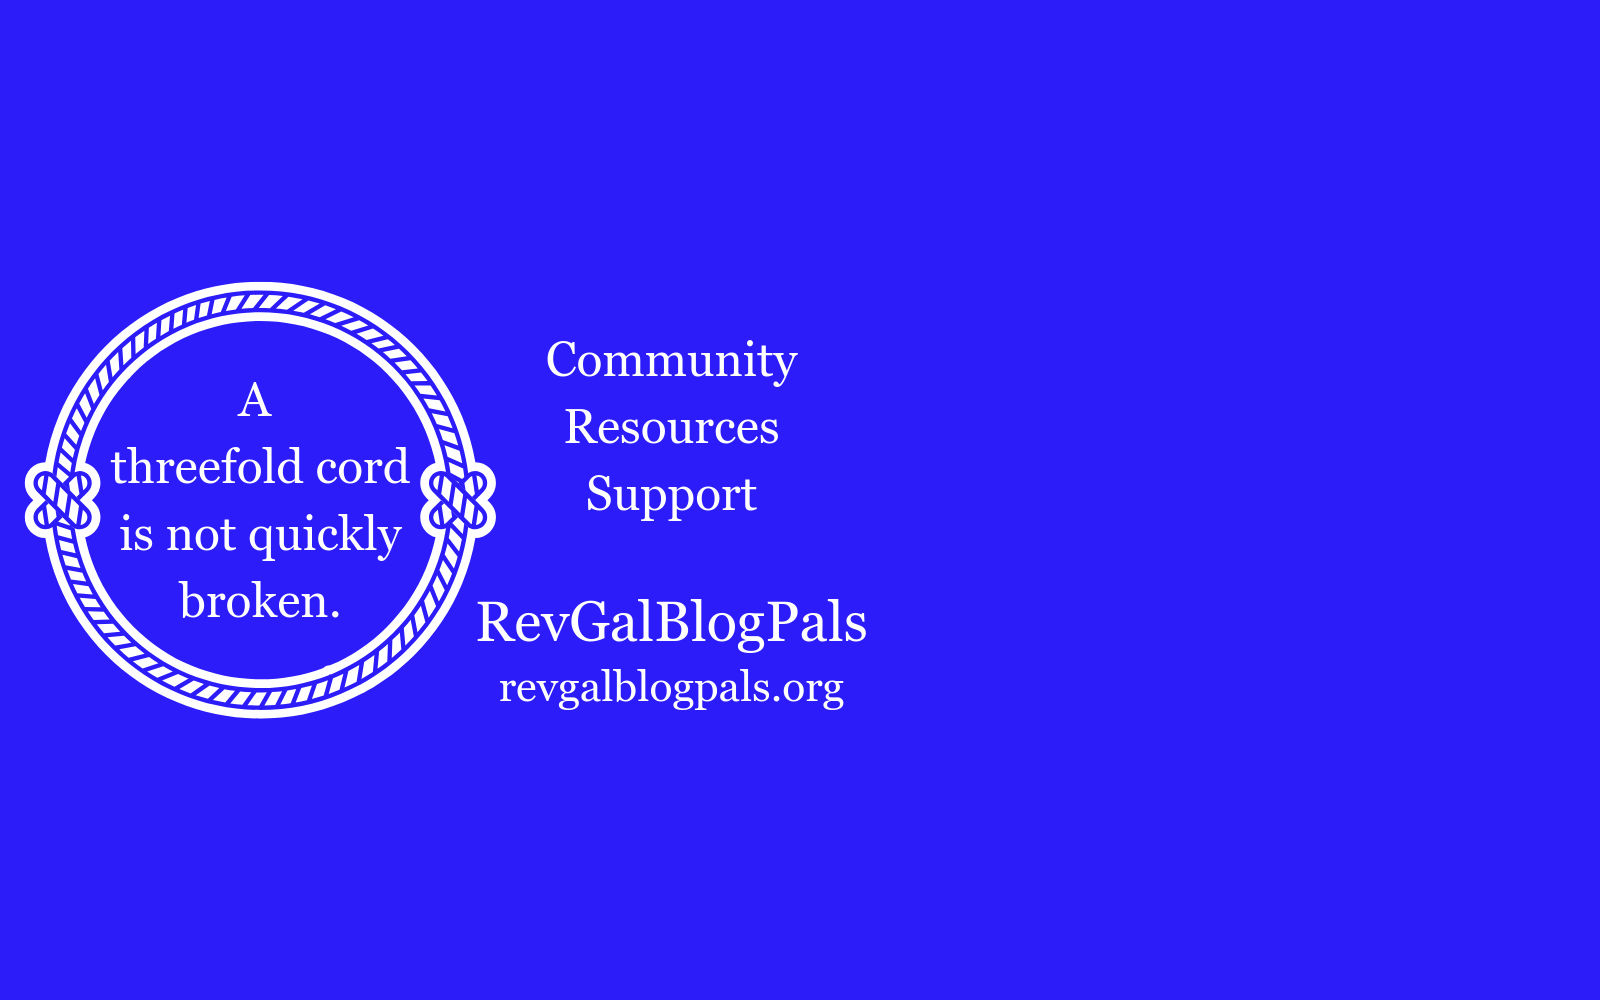 Help RevGalBlogPals create resources, provide support, and strengthen community for clergywomen image